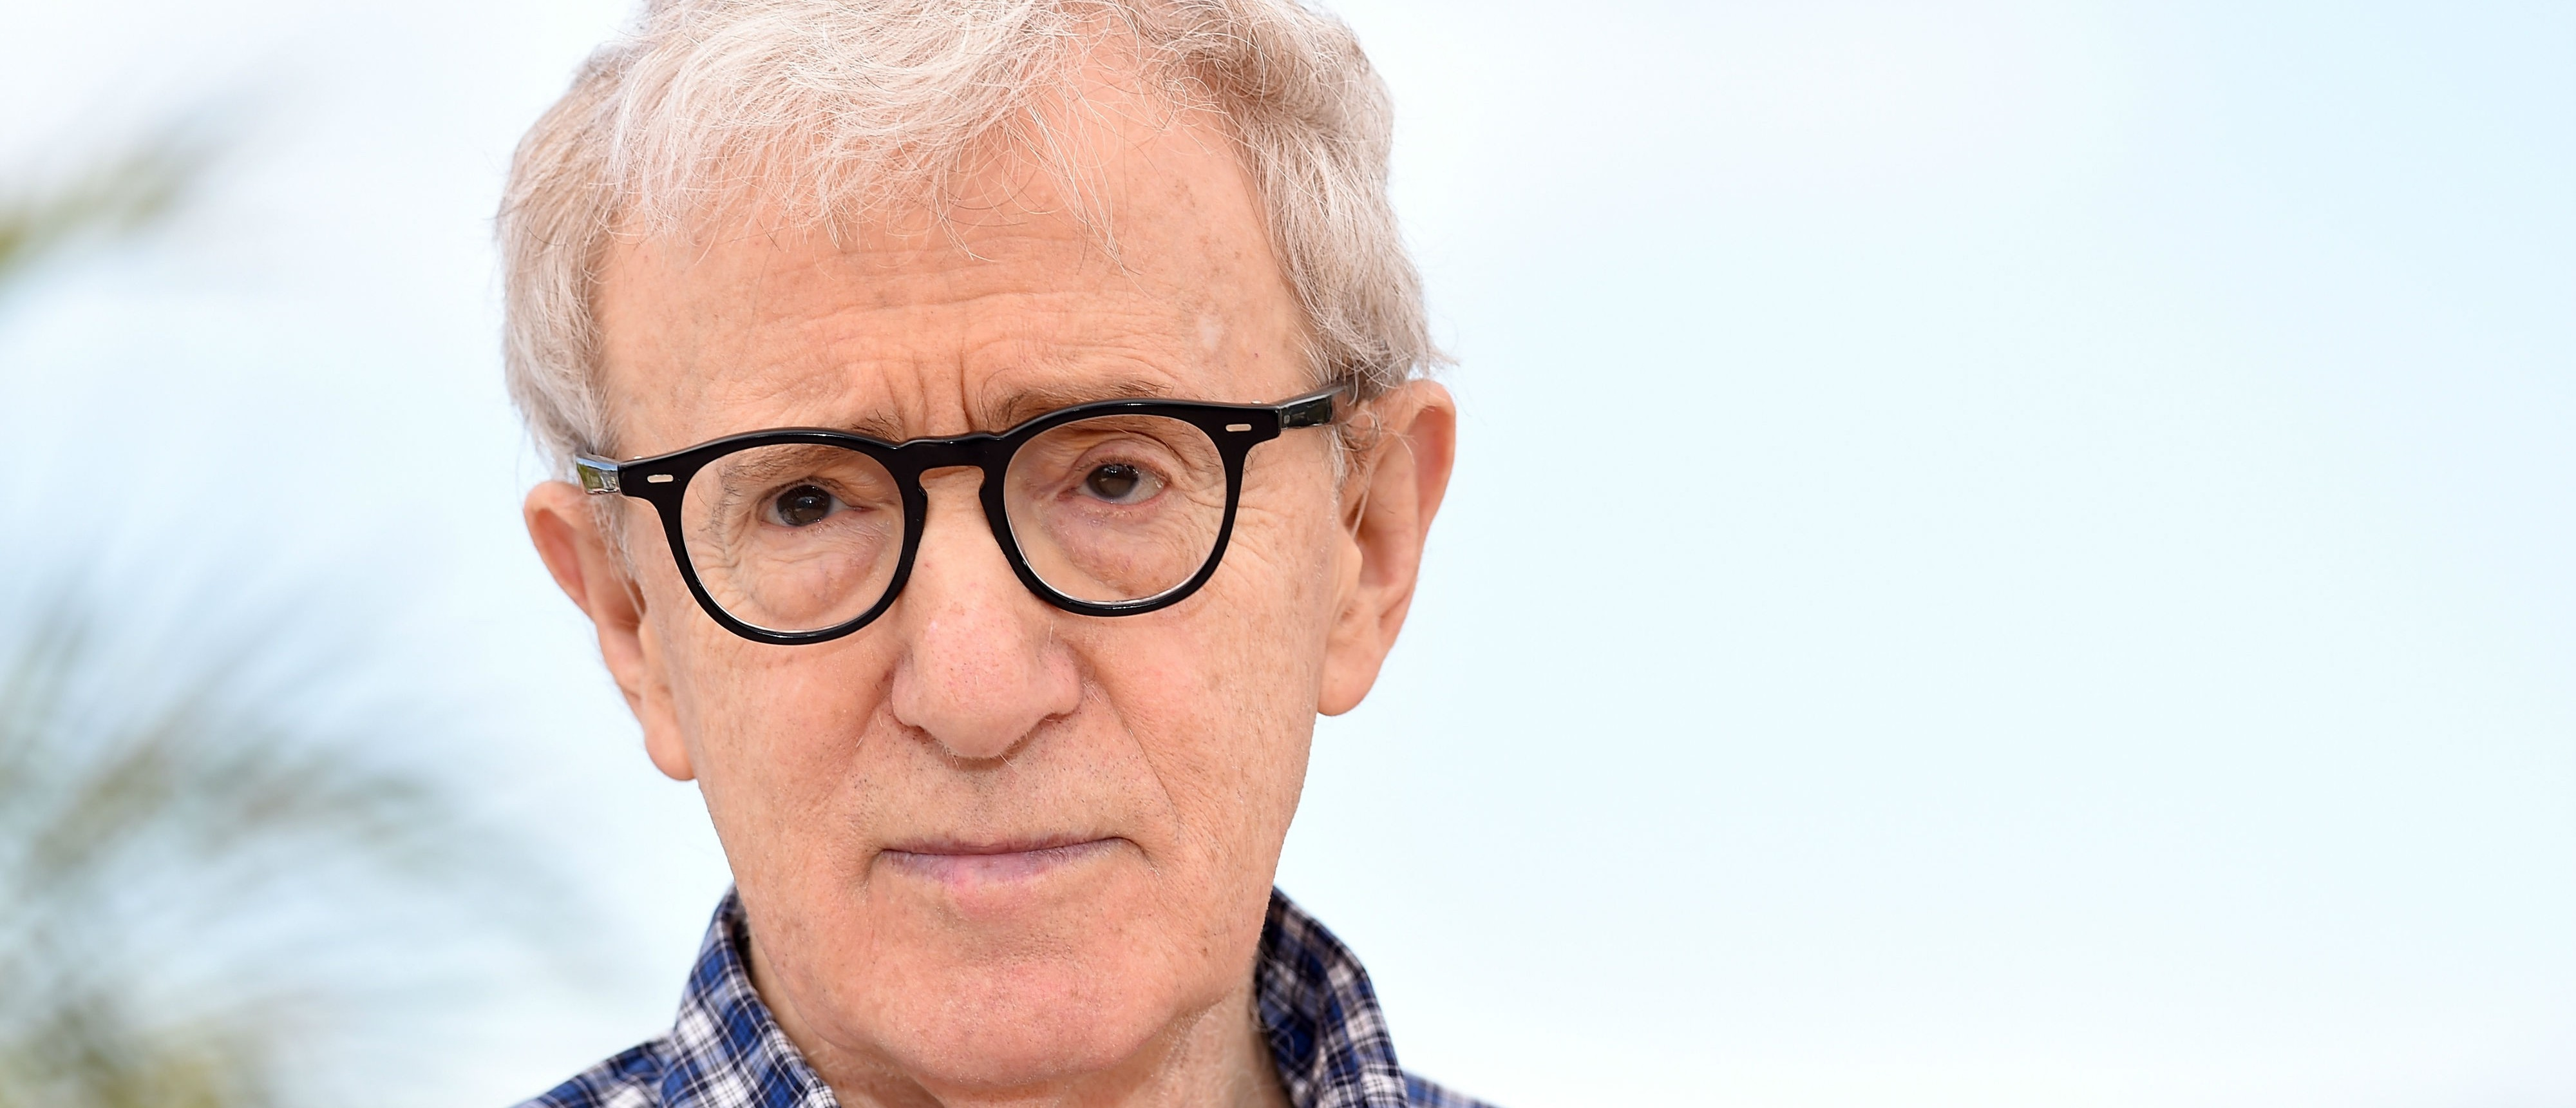 Comedian makes rape joke about Woody Allen